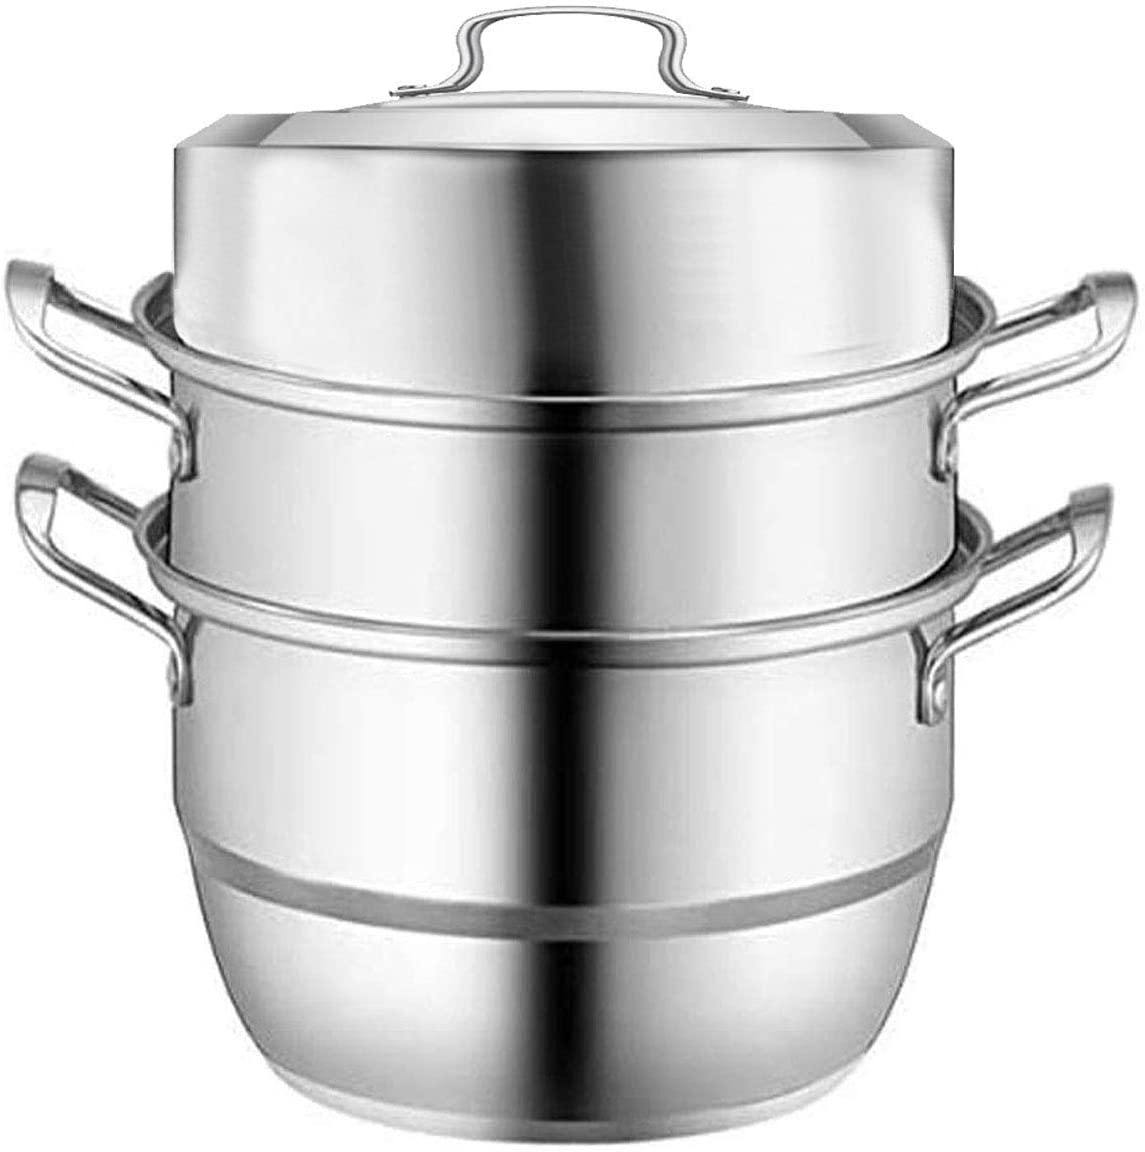 VONOTO Cookware Steamer Pot, Steaming Cookware, Stainless Steel 11 inch 9QT Steamer cooking pot, Rice cooker, Double Boilder, Stack, Steam Soup Pot